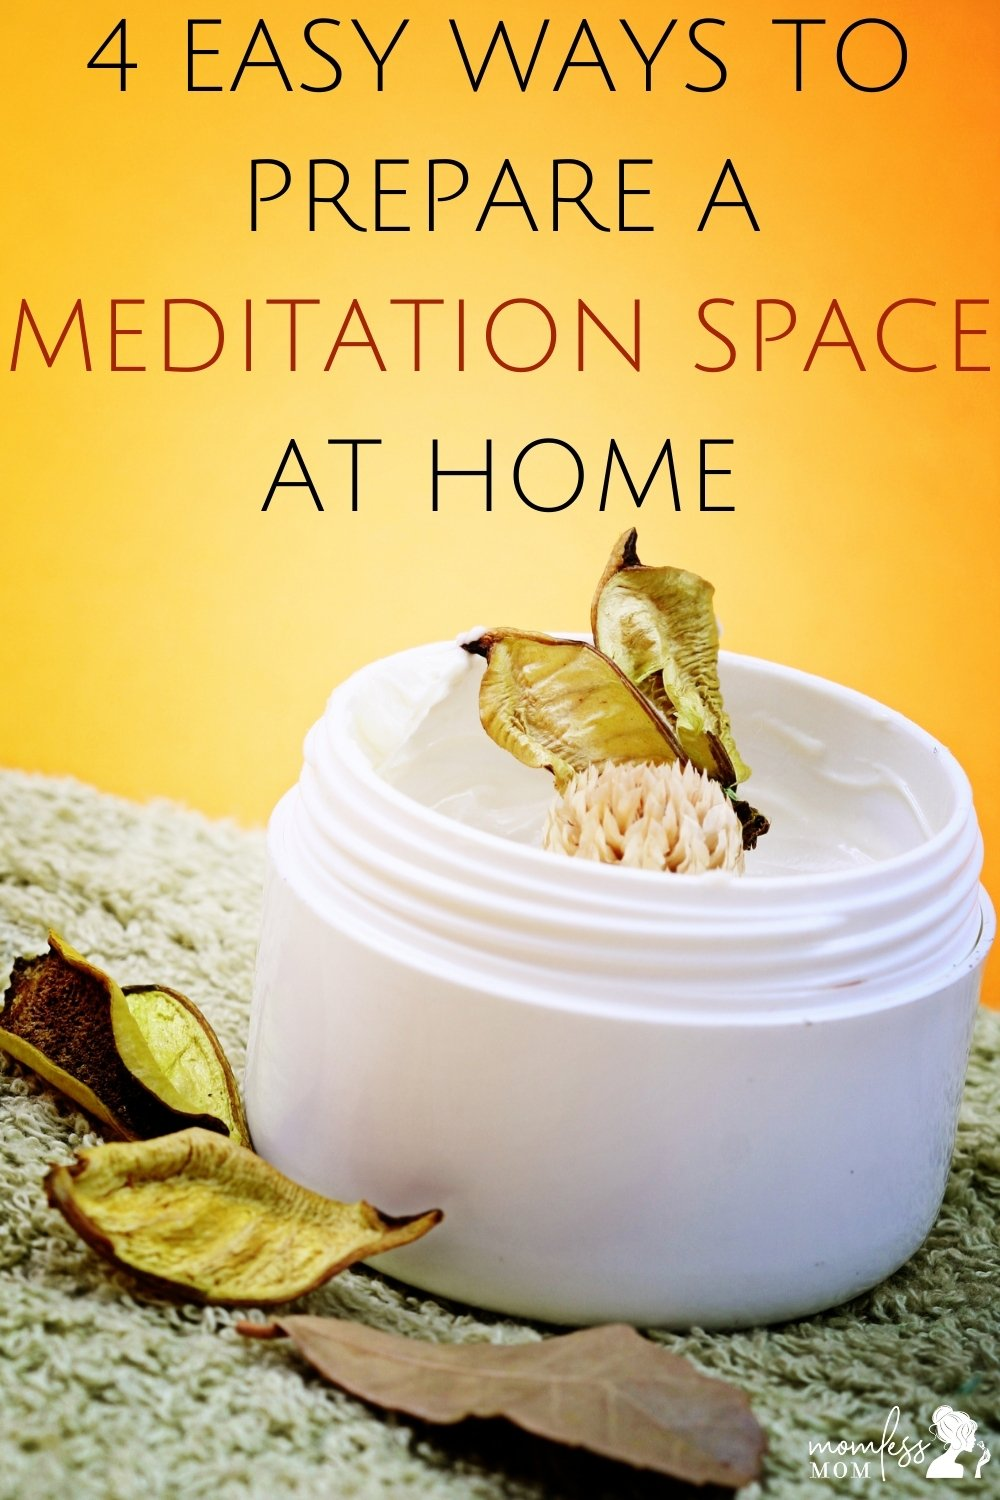 How to Prepare a Meditation Space at Home